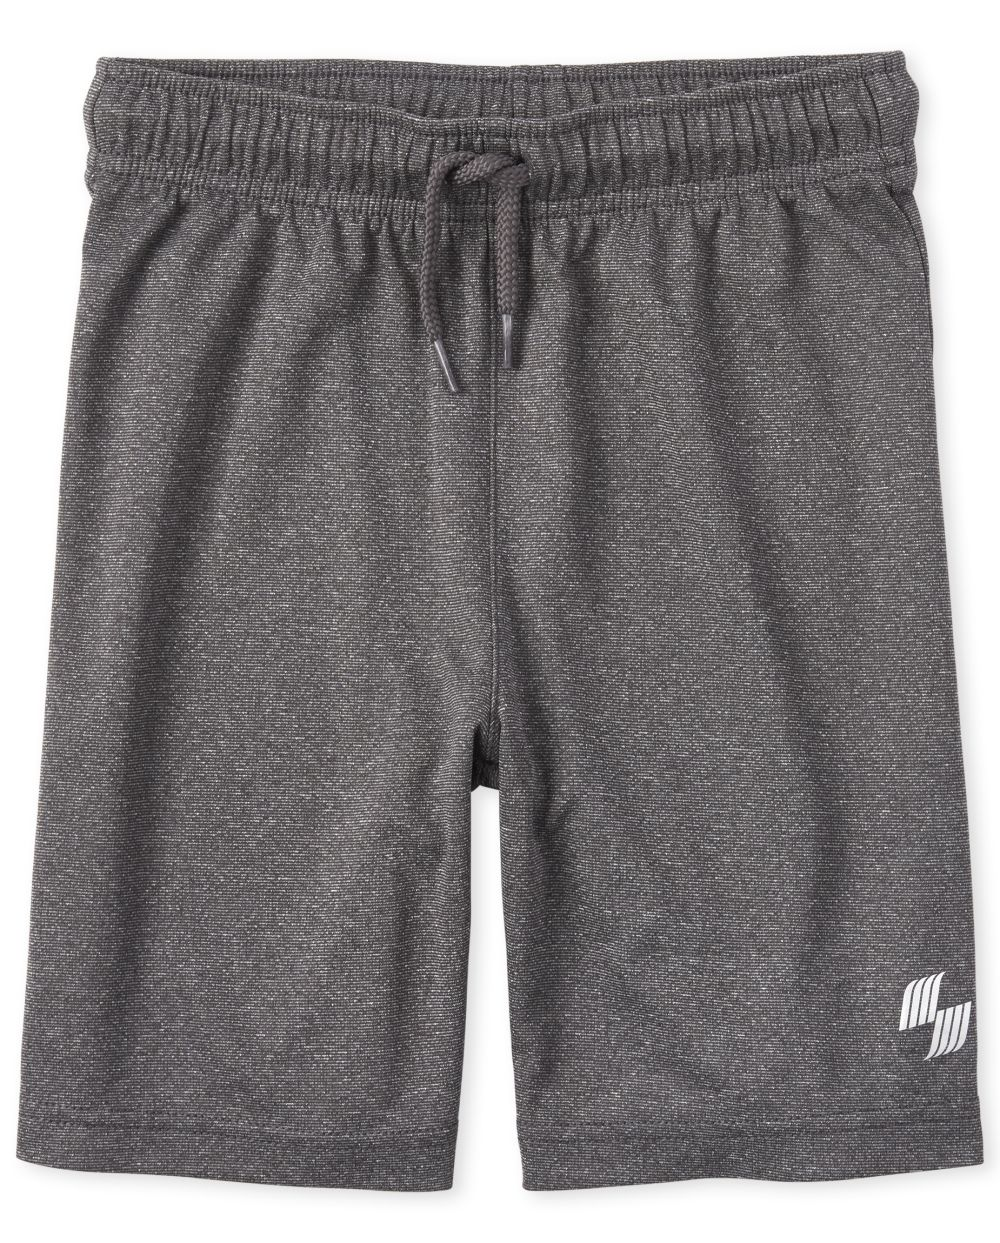 Boys Mix And Match Marled Performance Basketball Shorts